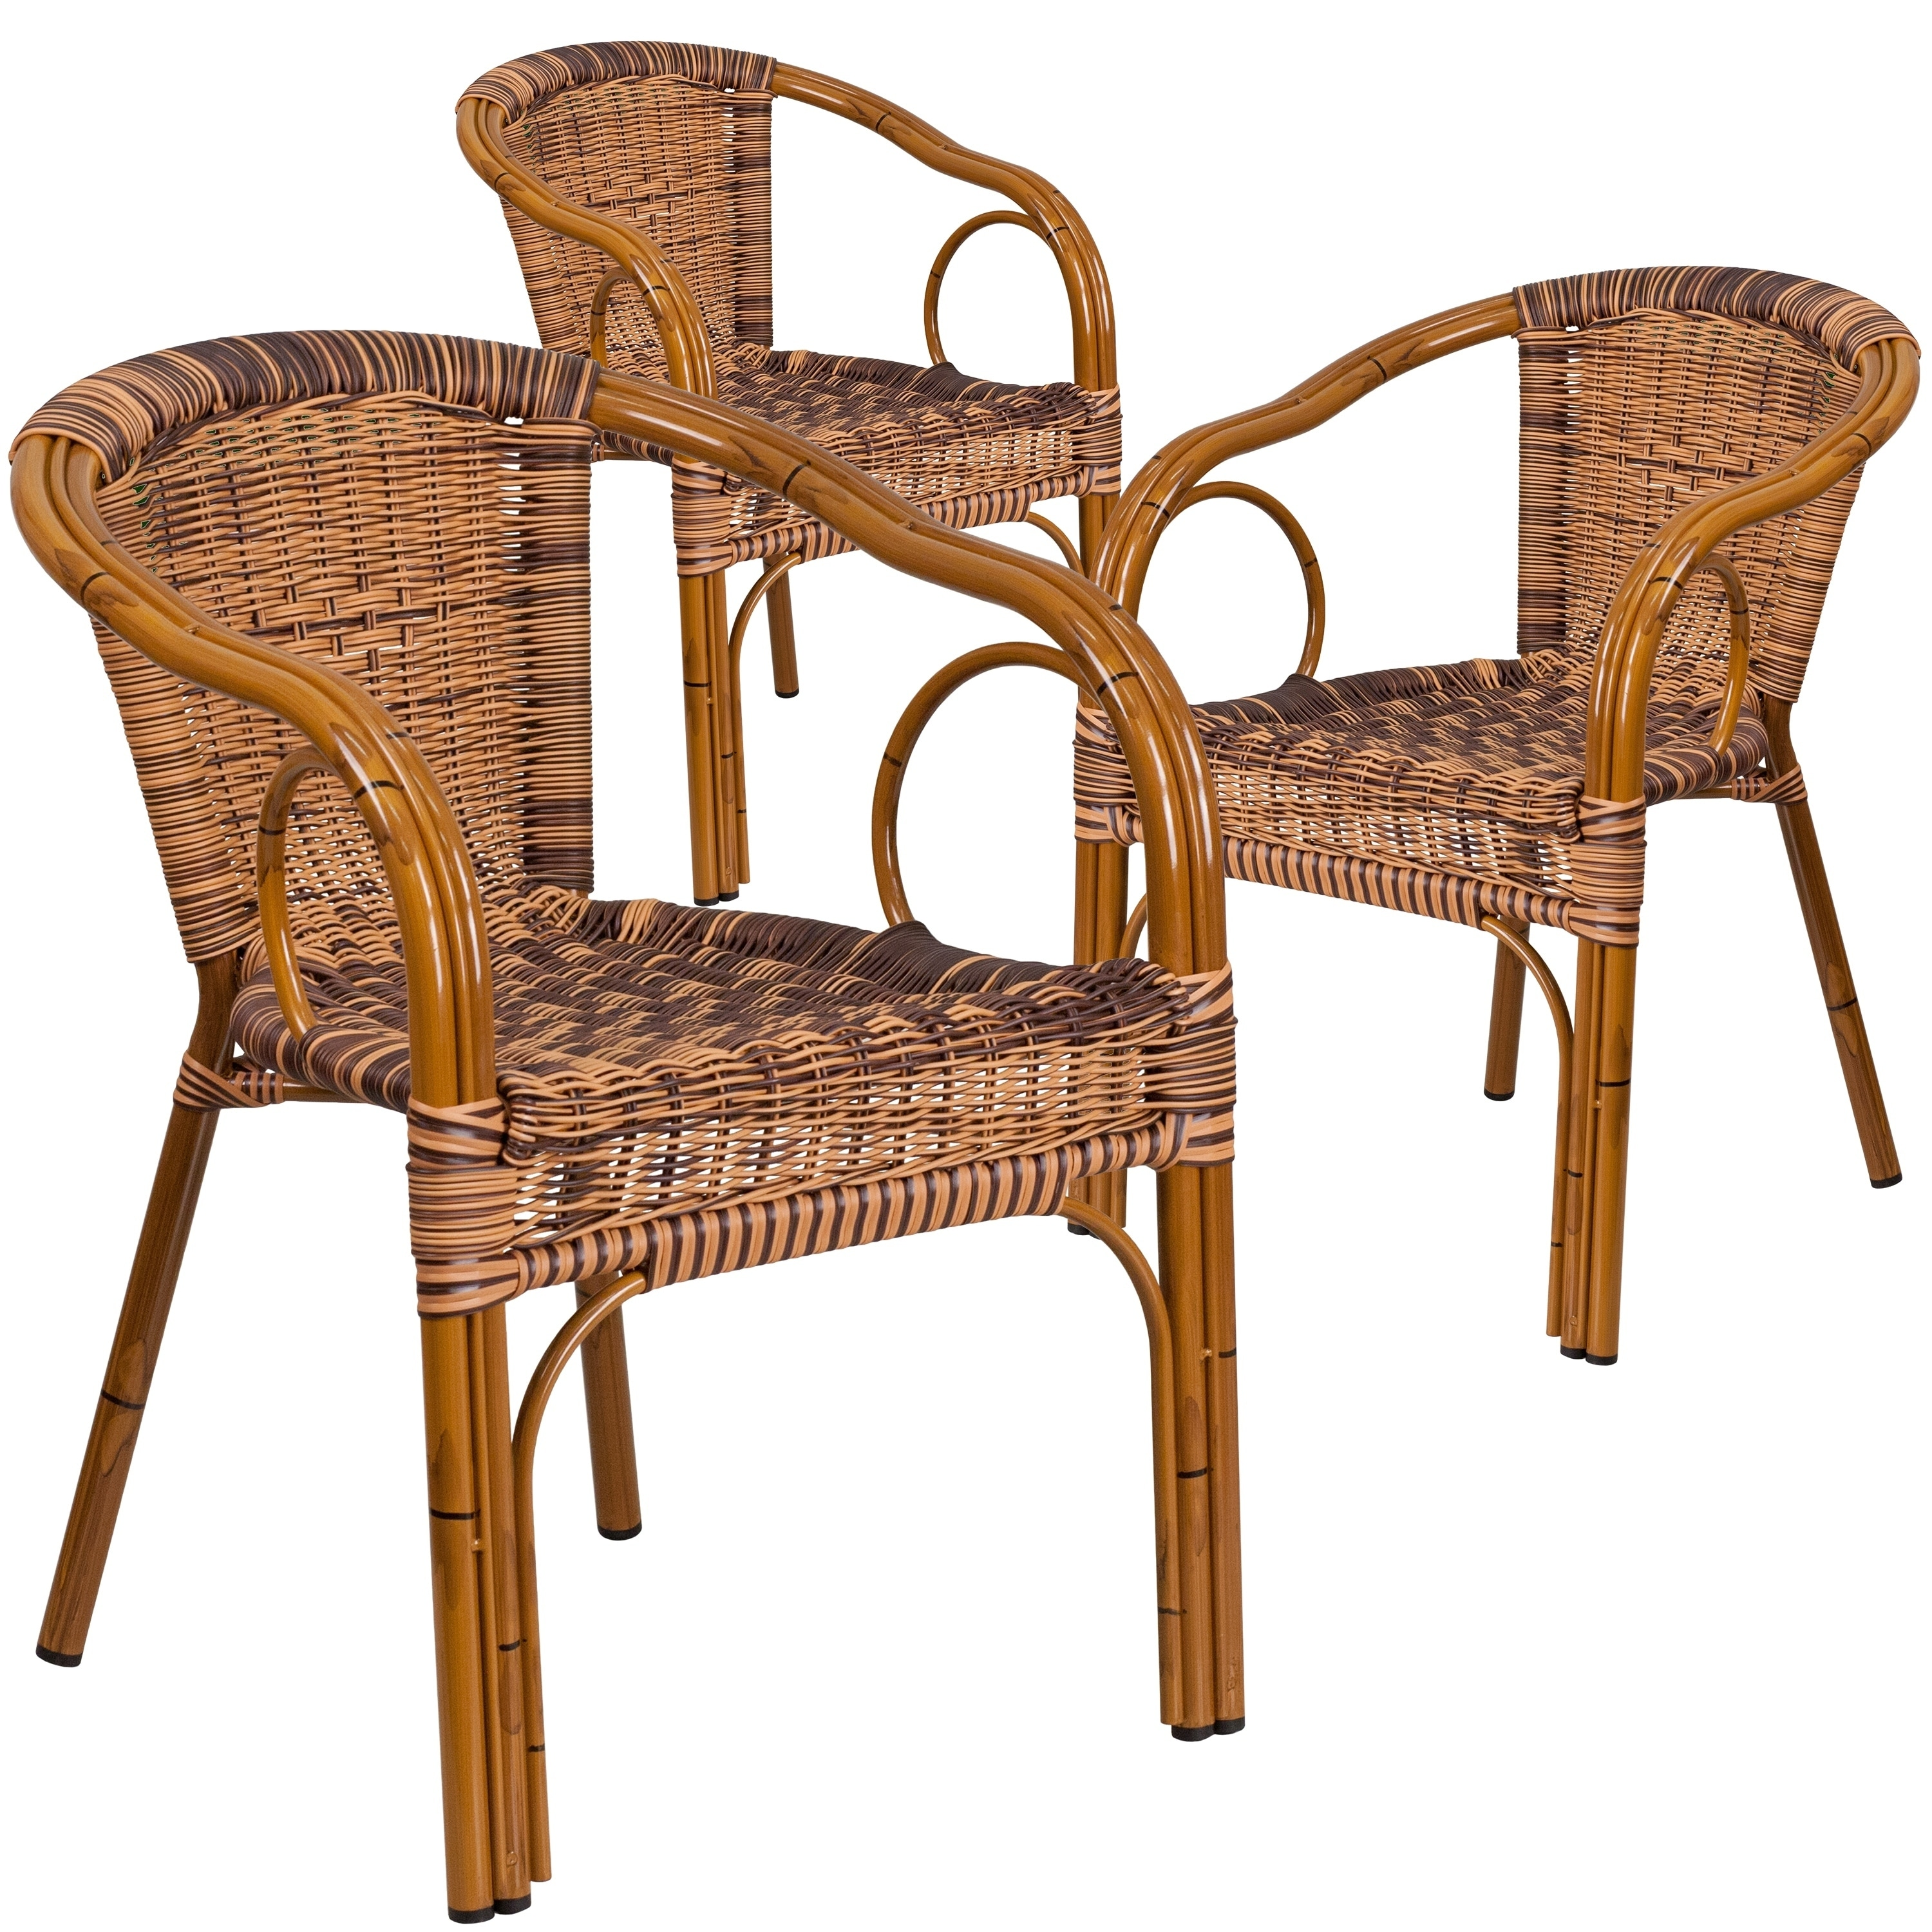 Shop Black Friday Deals On 3 Pack Cadiz Series Rattan Restaurant Patio Chair With Bamboo Aluminum Frame Overstock 17432740